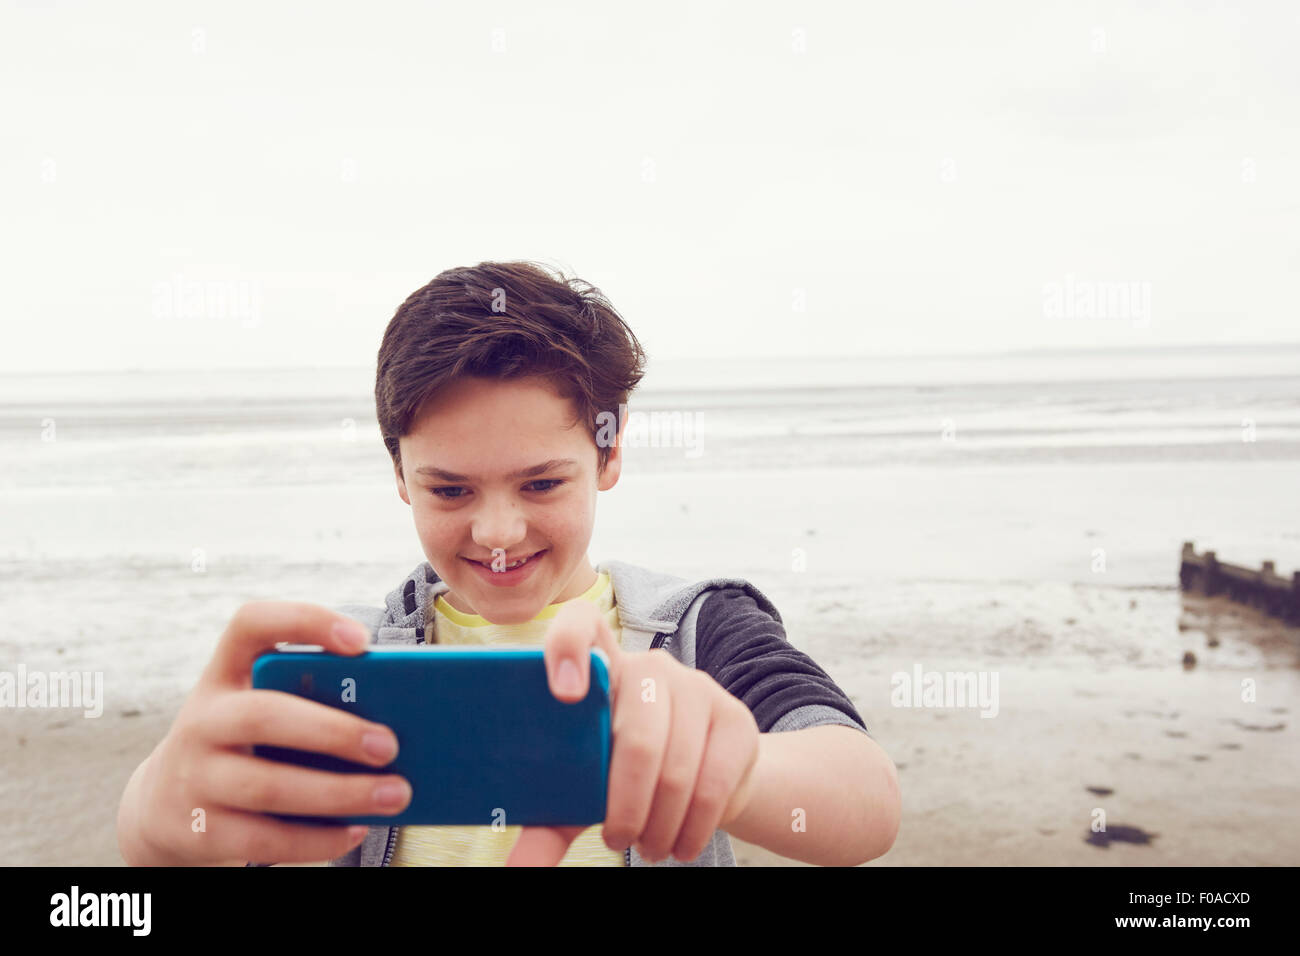 Adolescente sonriente tomando selfie smartphone en Seaside, Southend on Sea, Essex, Reino Unido Imagen De Stock